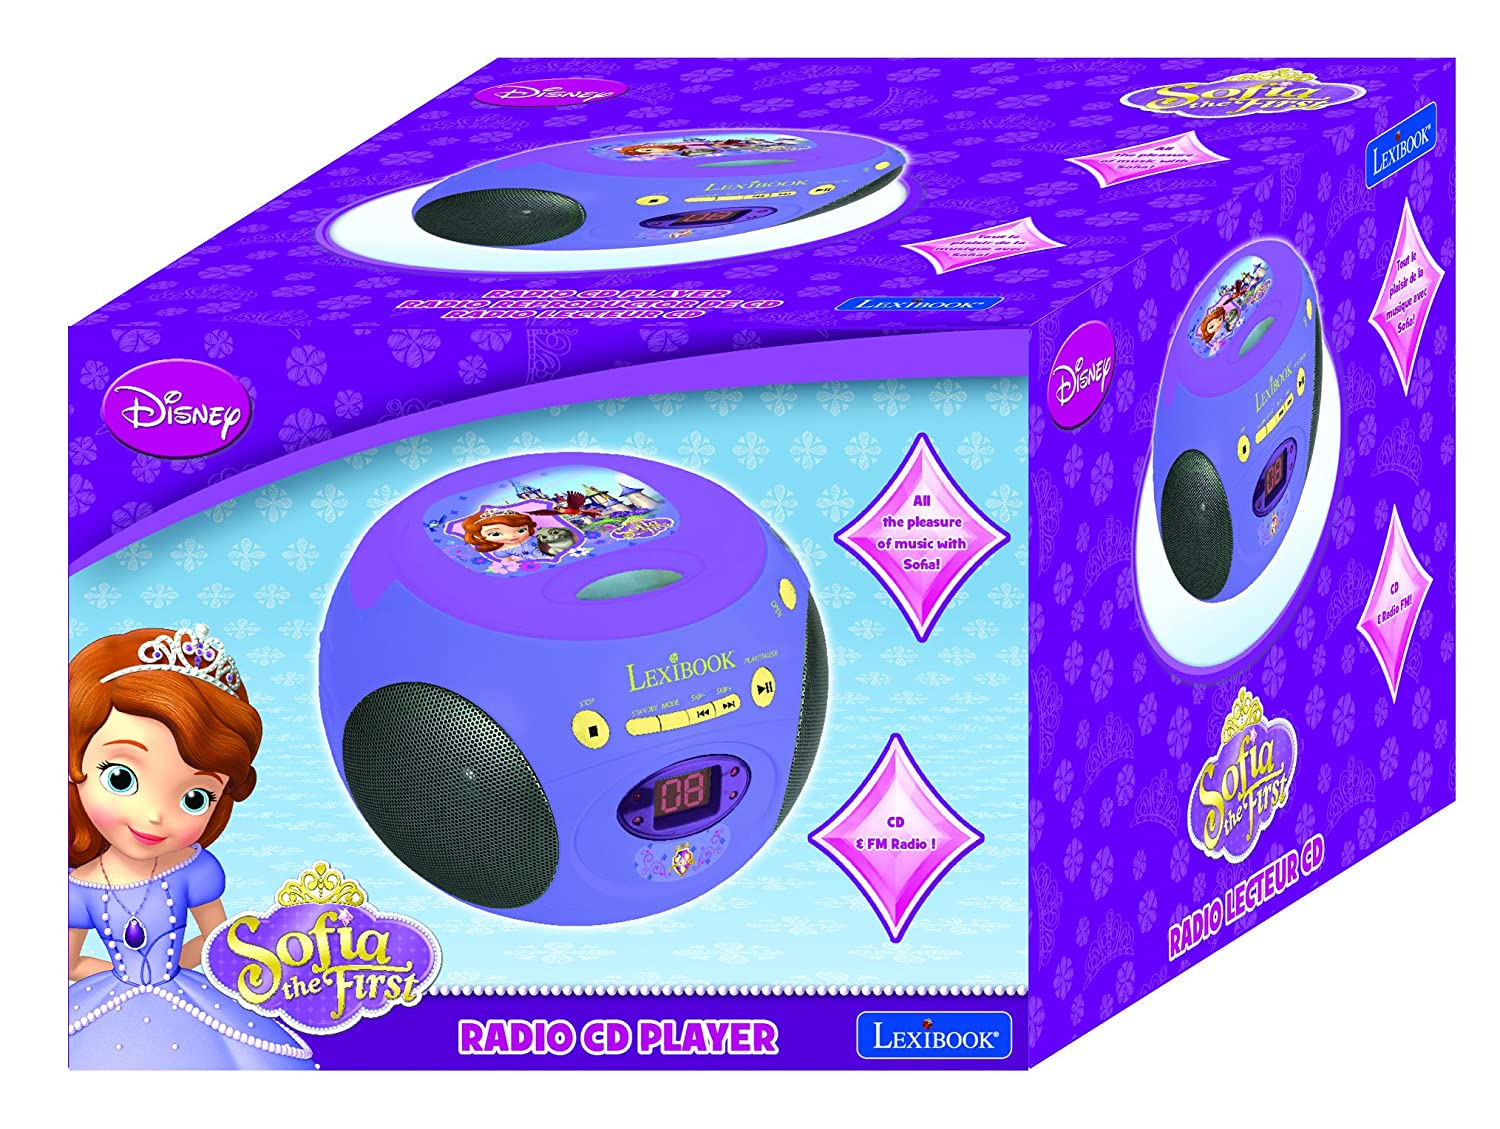 F 12610 Bol7777000011284 also 25634500 together with 9200000022686605 additionally 37301087 in addition 5258. on disney princess cd player with microphone